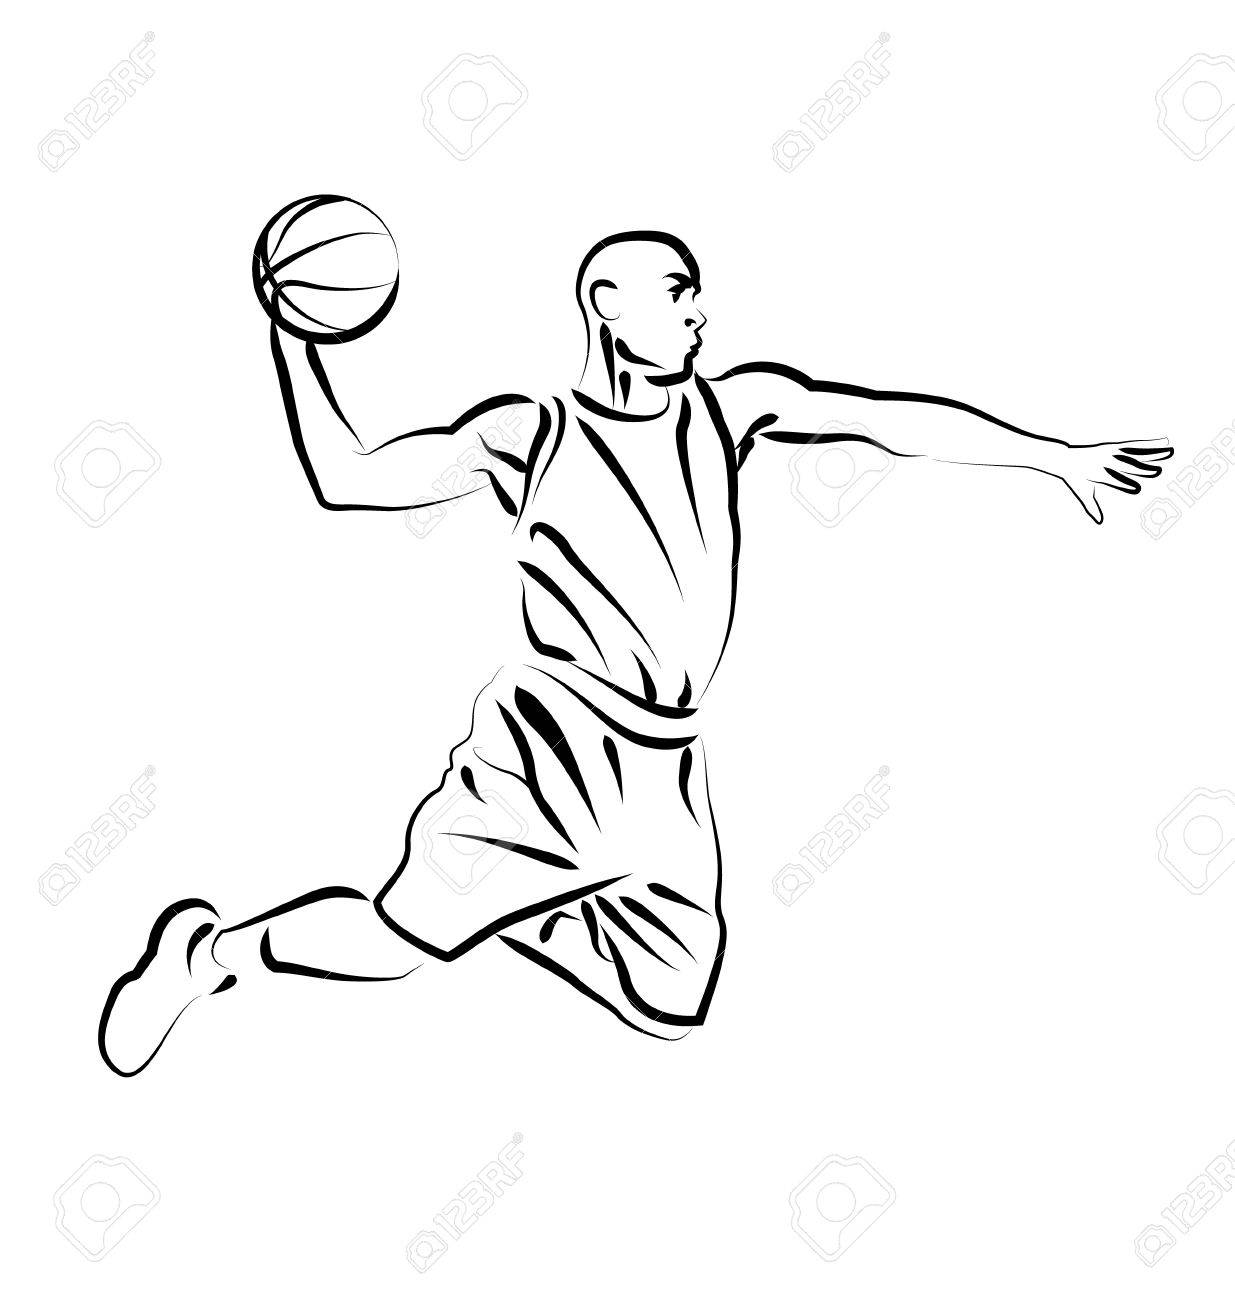 1235x1300 Vector Line Sketch Basketball Player Royalty Free Cliparts